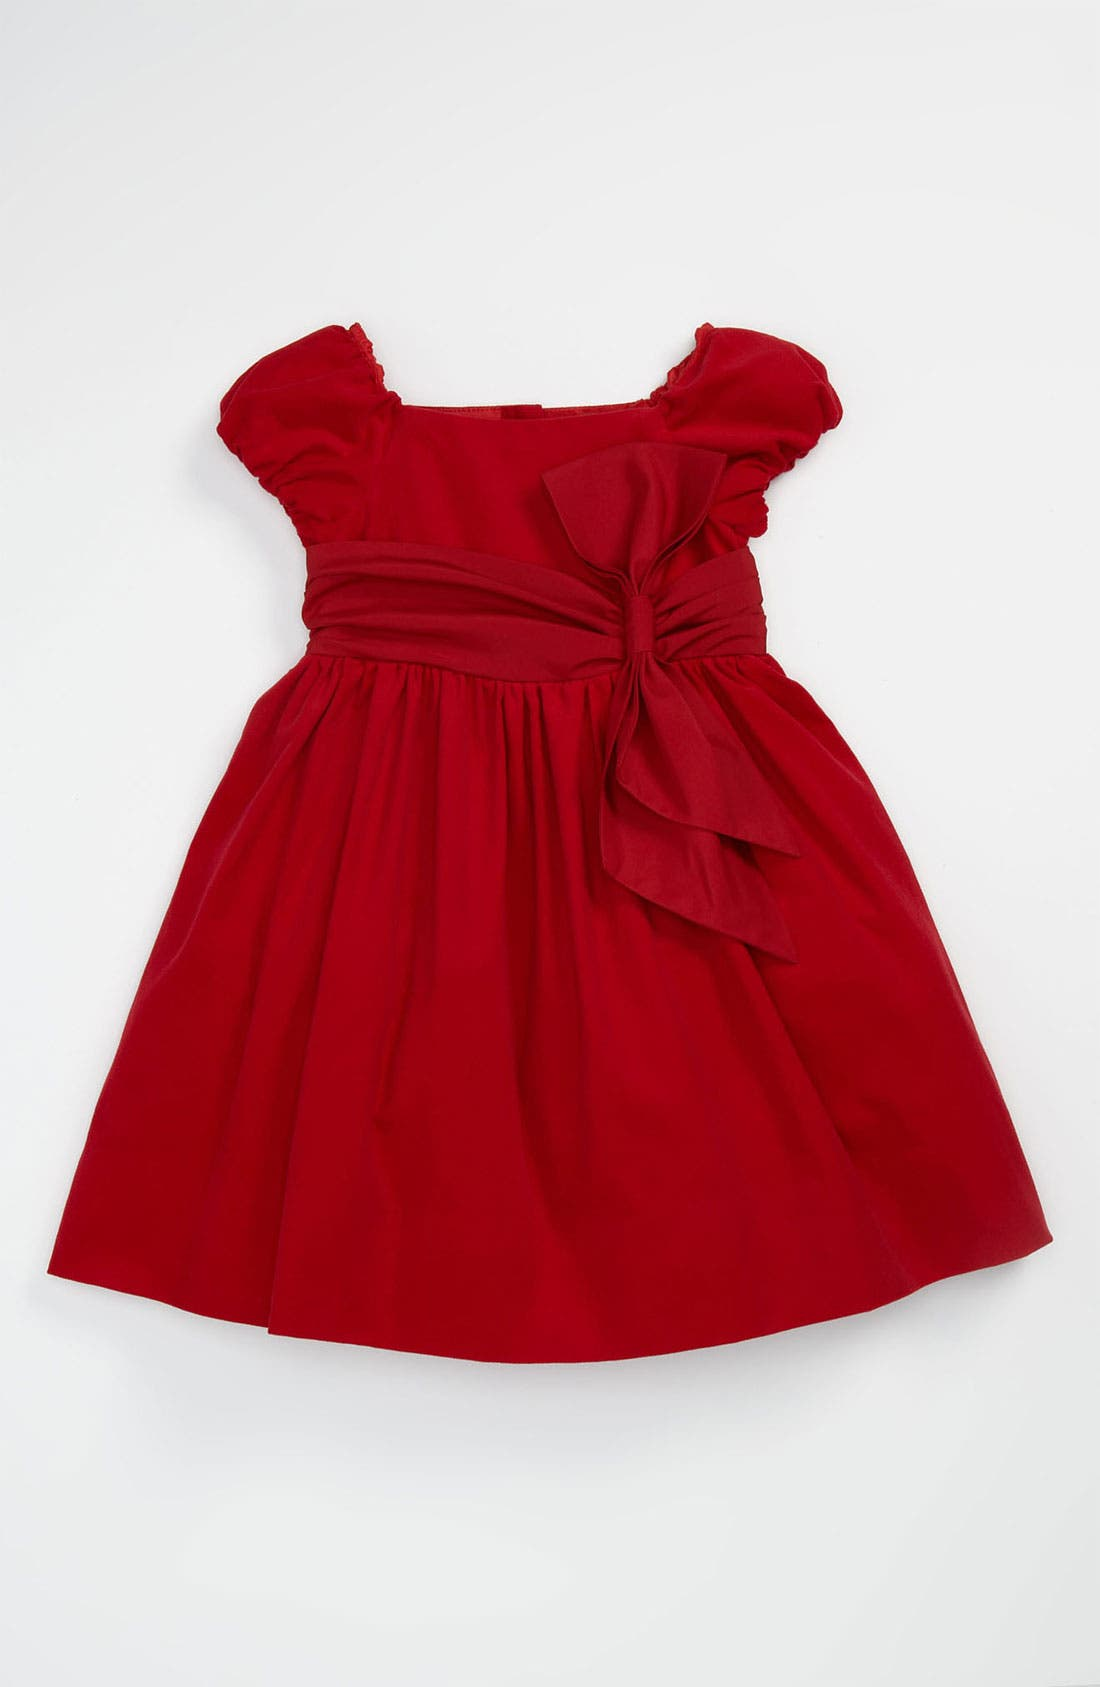 Alternate Image 1 Selected - Ralph Lauren Corduroy Party Dress (Toddler)